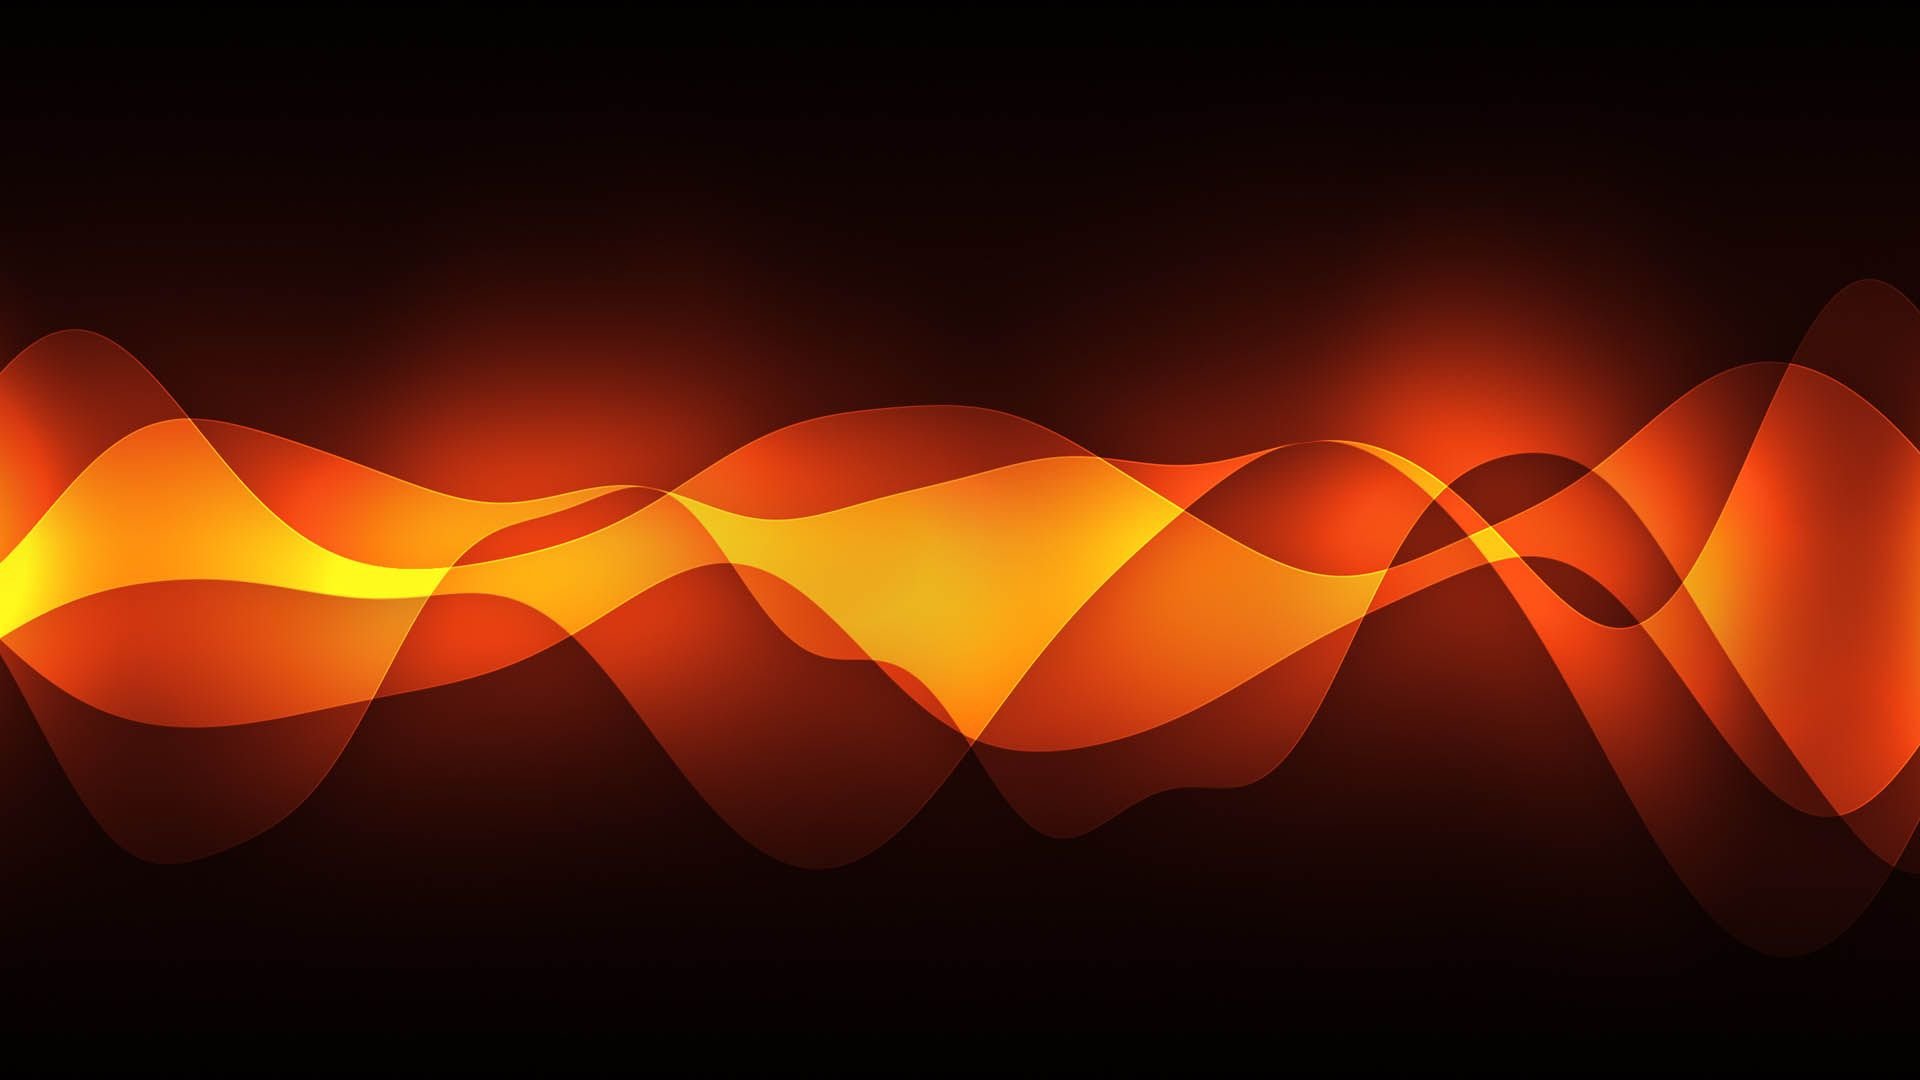 30 Astonishing Abstract Wallpapers Style Arena Iphone Wallpaper Orange Abstract Wallpaper Retro Wallpaper